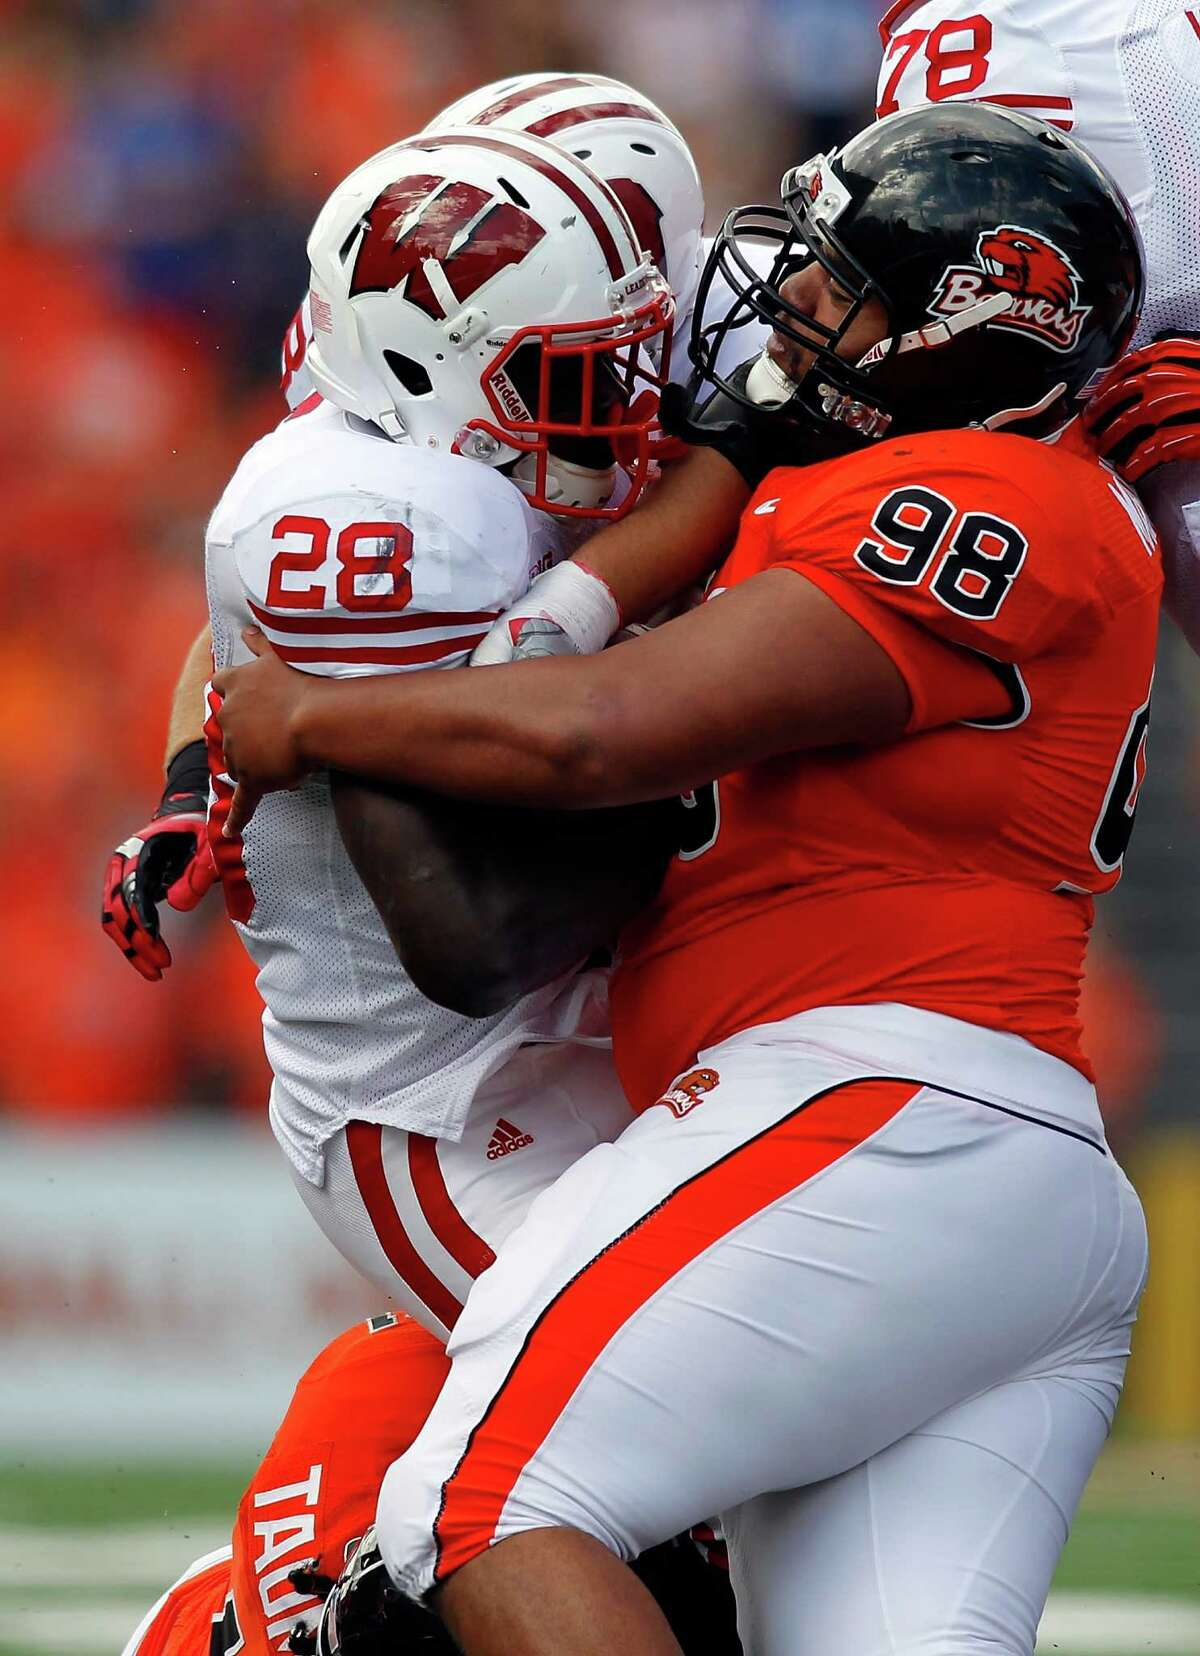 Montee Ball #28 of the Wisconsin Badgers is stopped by Castro Masaniai #98of the Oregon State Beavers on September 8, 2012 at the Reser Stadium in Corvallis, Oregon.